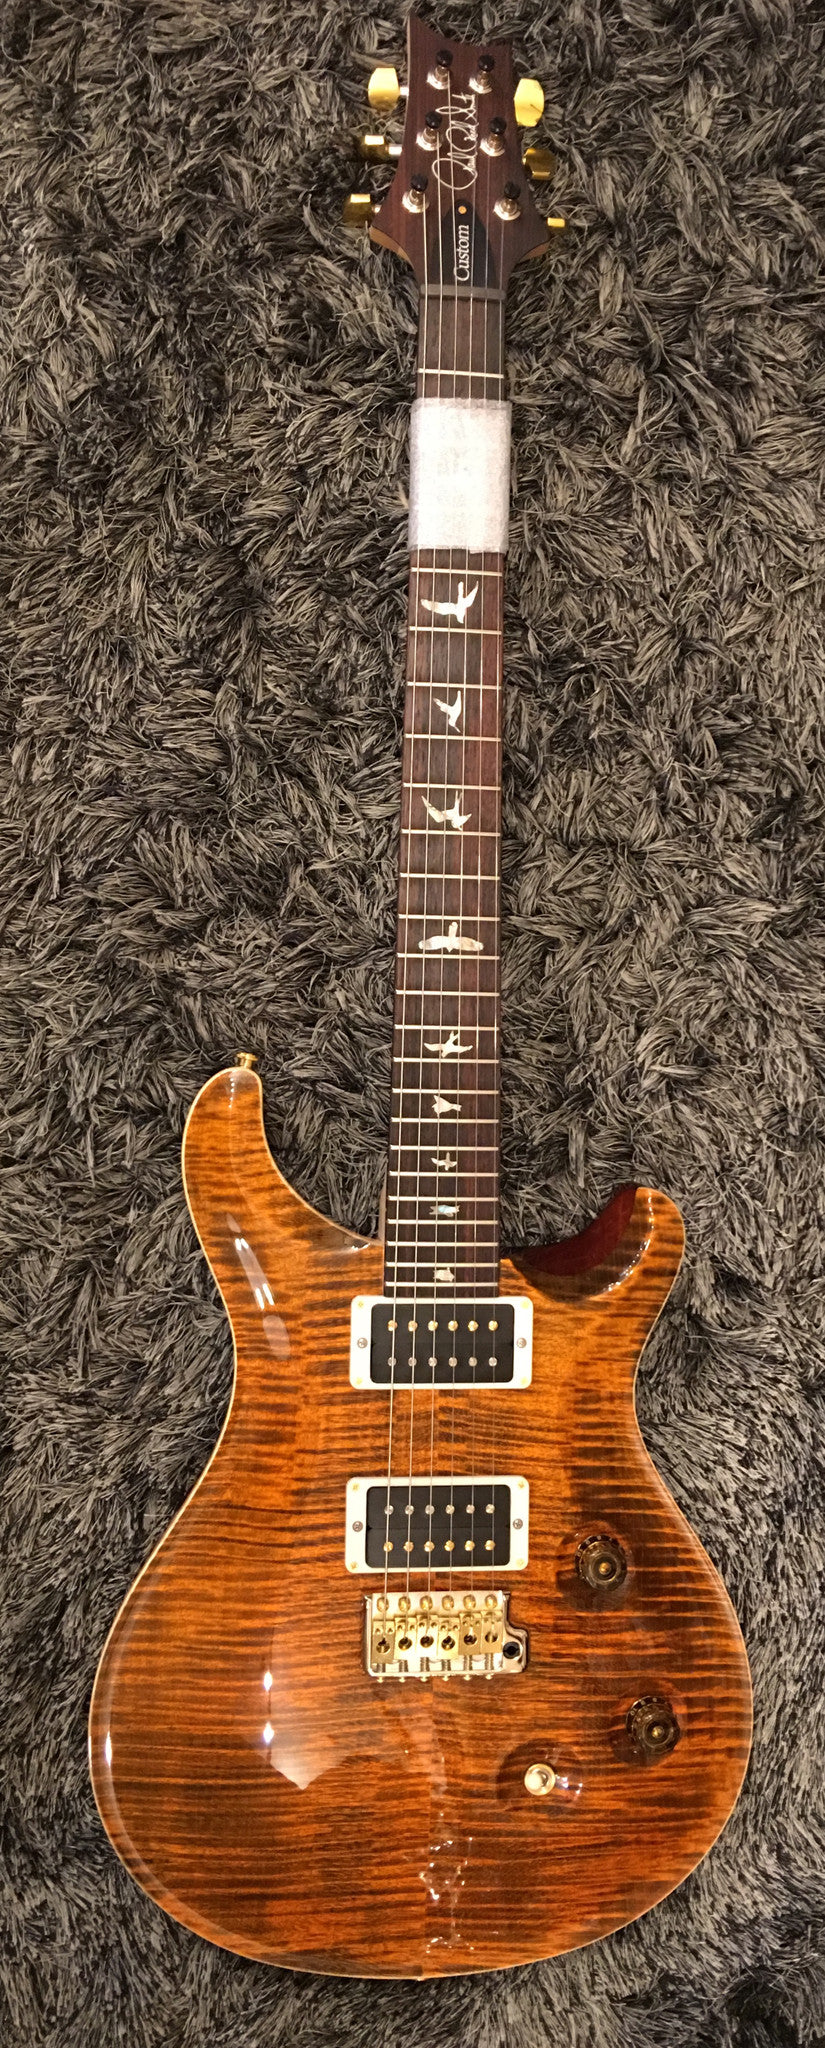 CUSTOM 24 10 TOP, THIN FLAME MAPLE NECK, HYBRID HDW,ORANGE TIGER